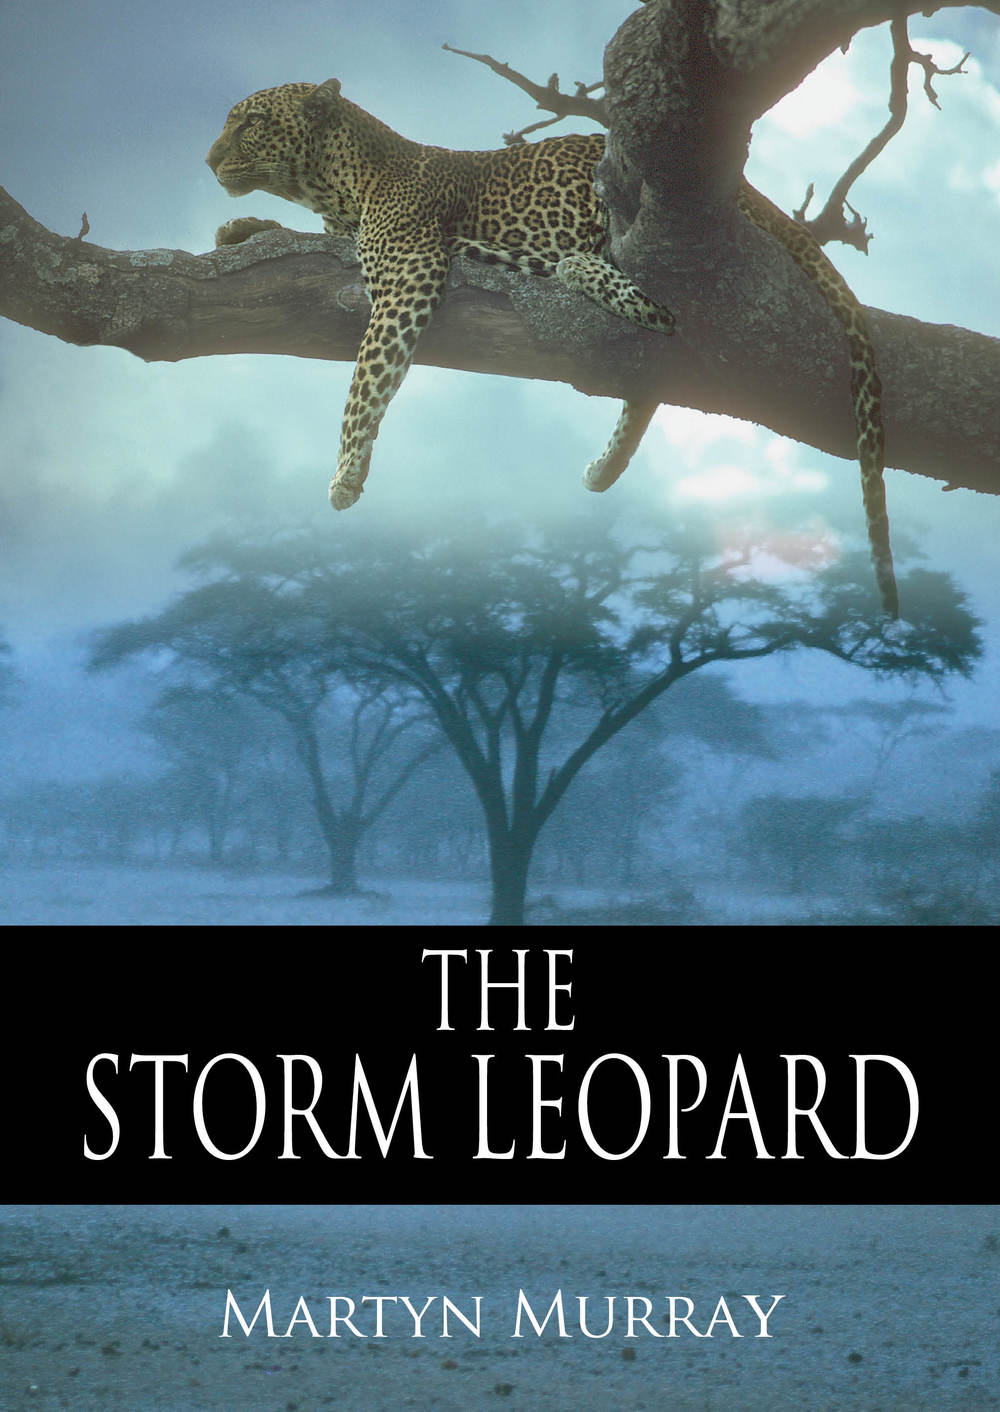 The Storm Leopard.jpg